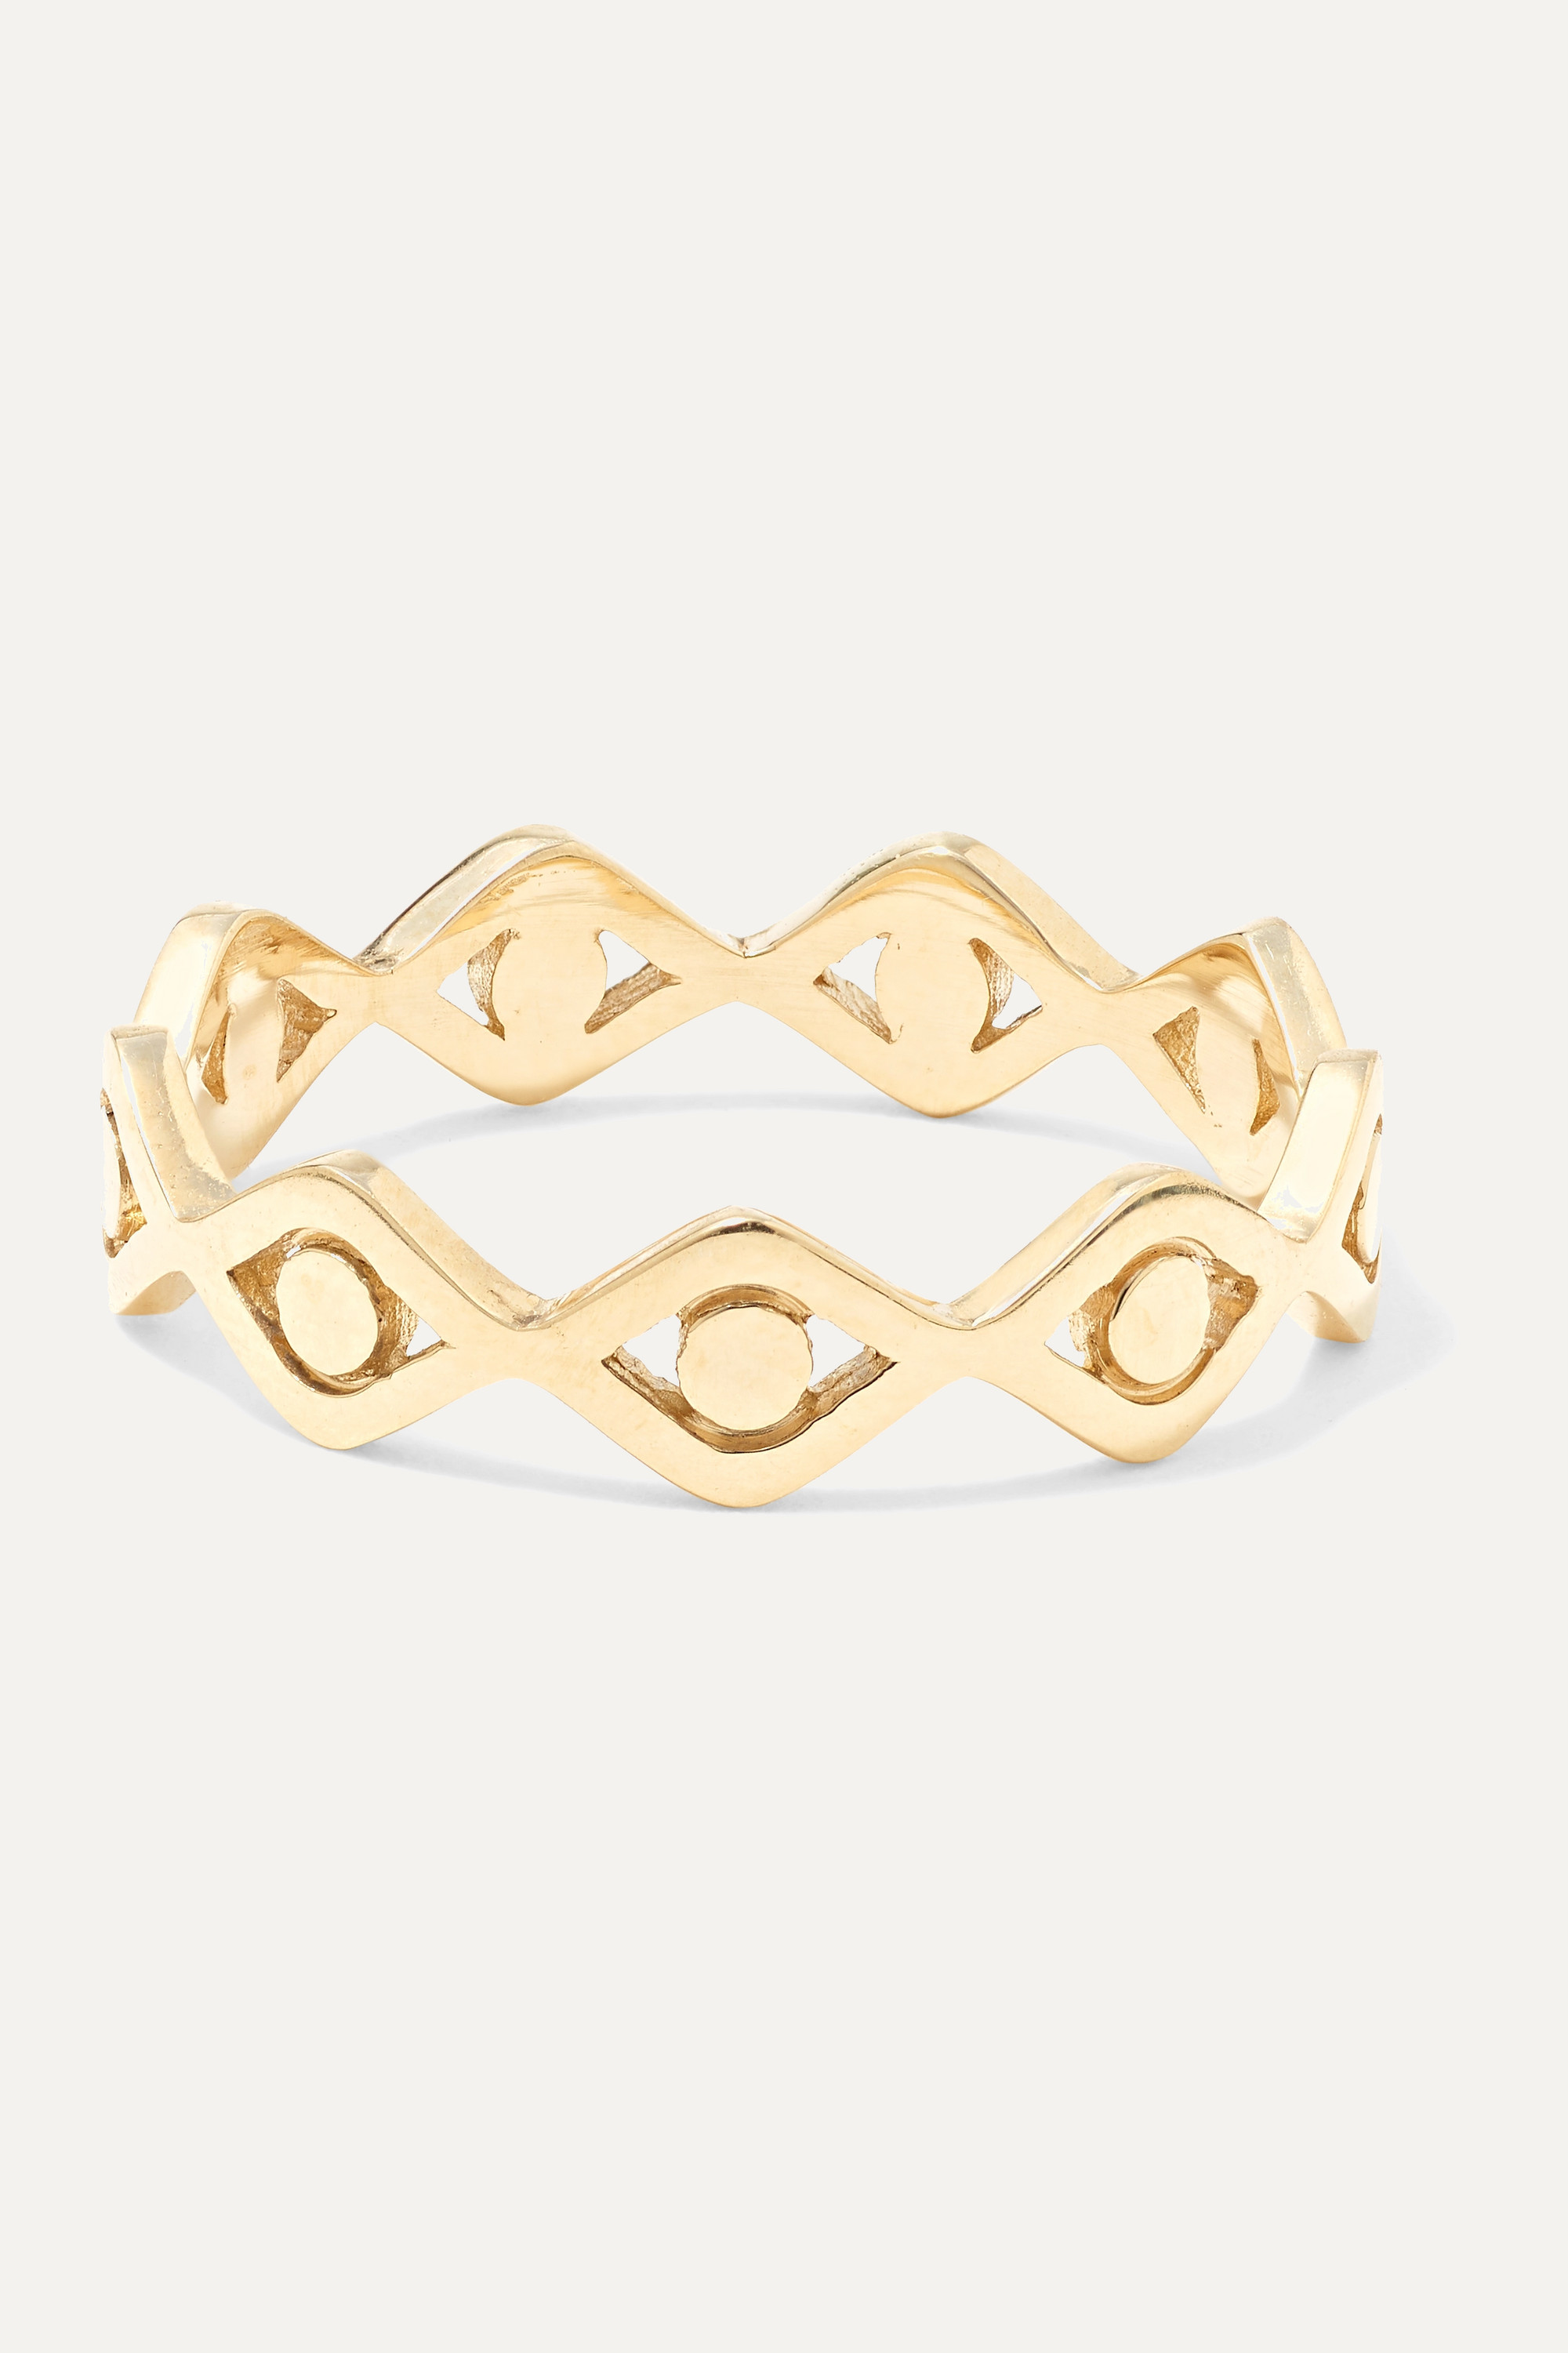 Sydney Evan Evil Eye 14-karat gold ring